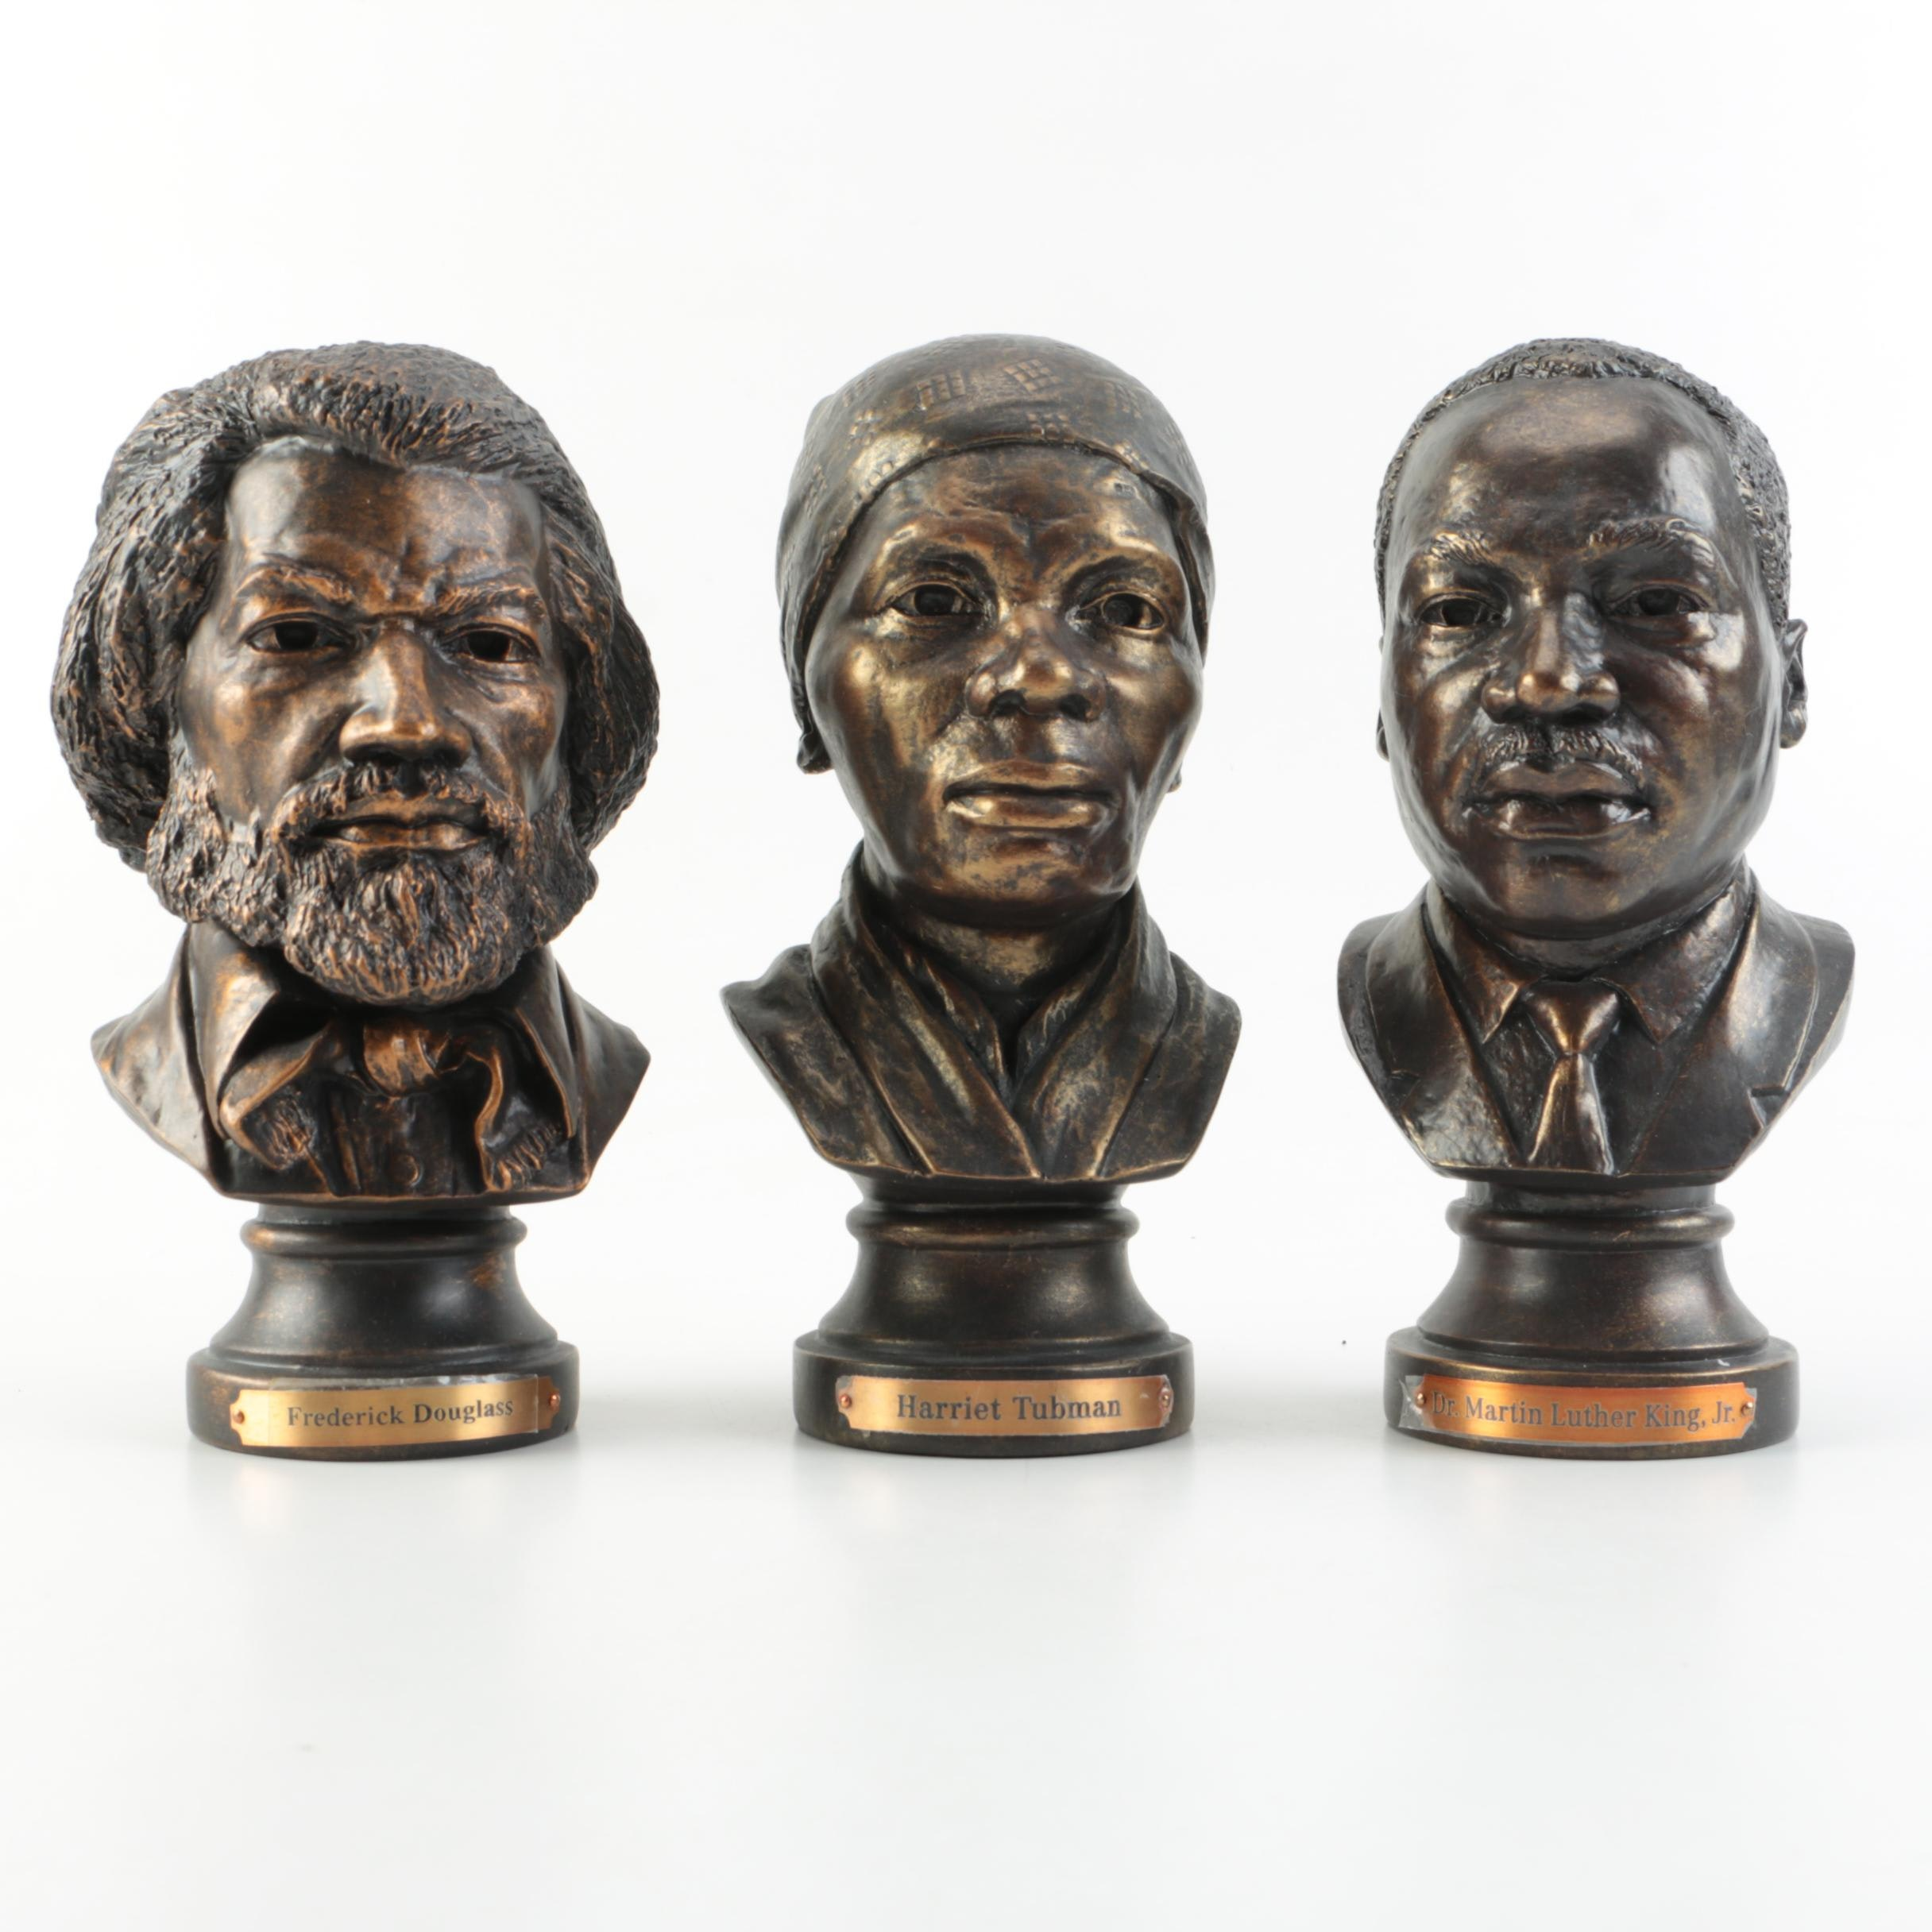 Metal Busts of Douglass, Tubman, and King by the Danbury Mint